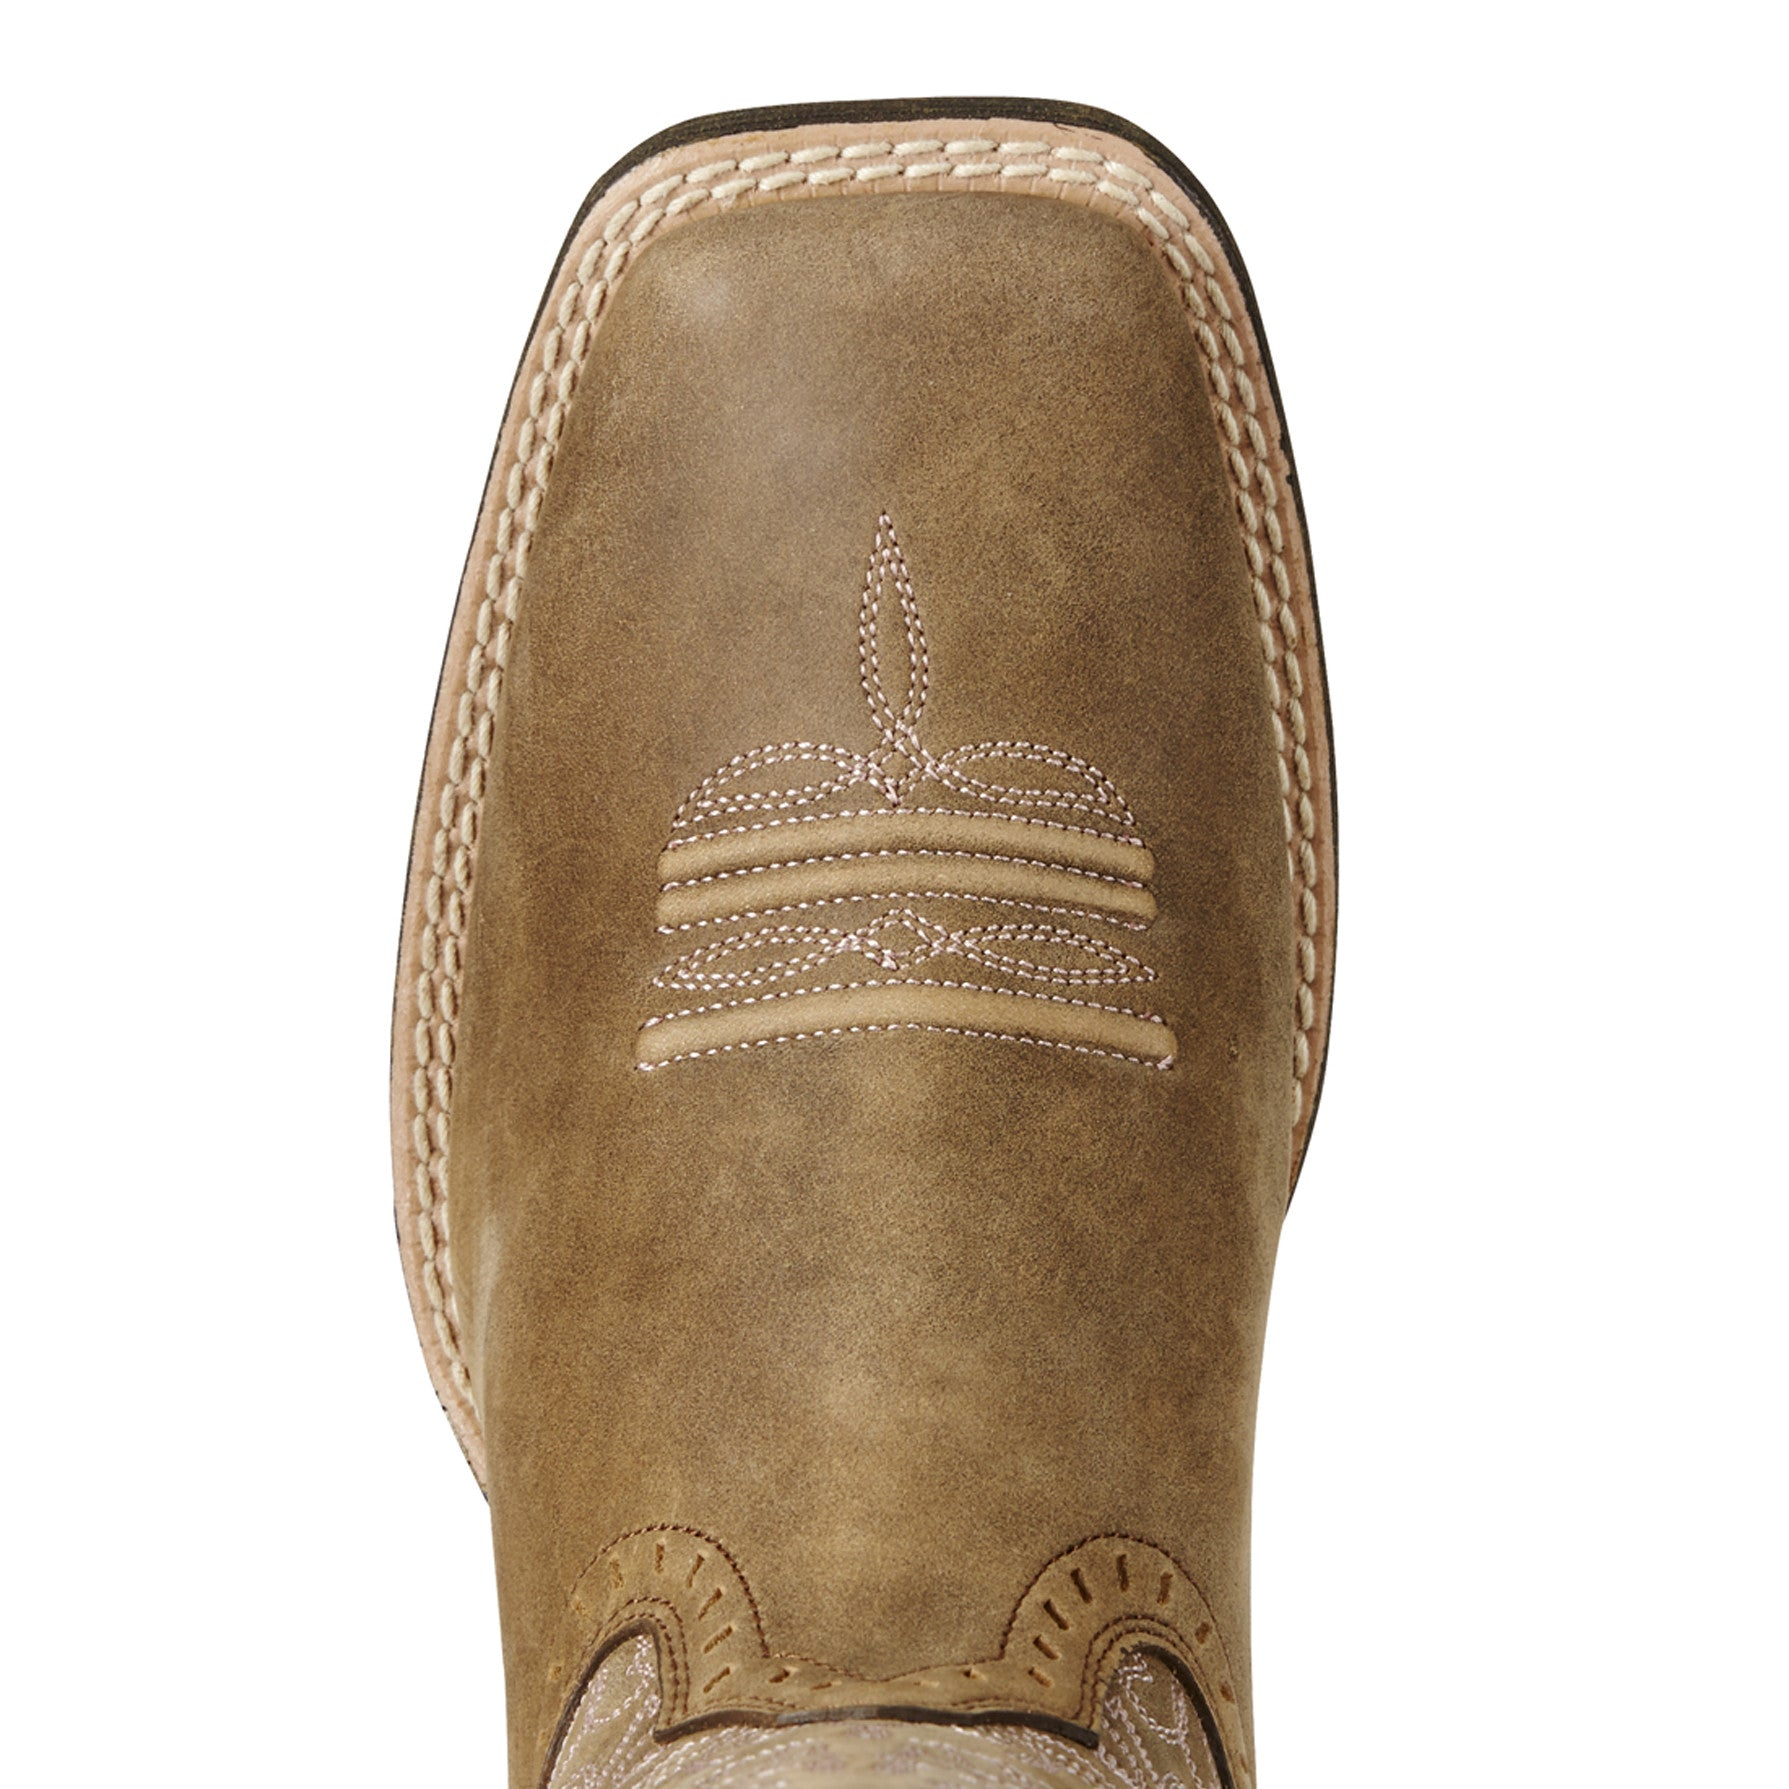 5f9a4f0d7d2 Ariat Brown Round Up Remuda Square Toe Boots – Western Edge, Ltd.